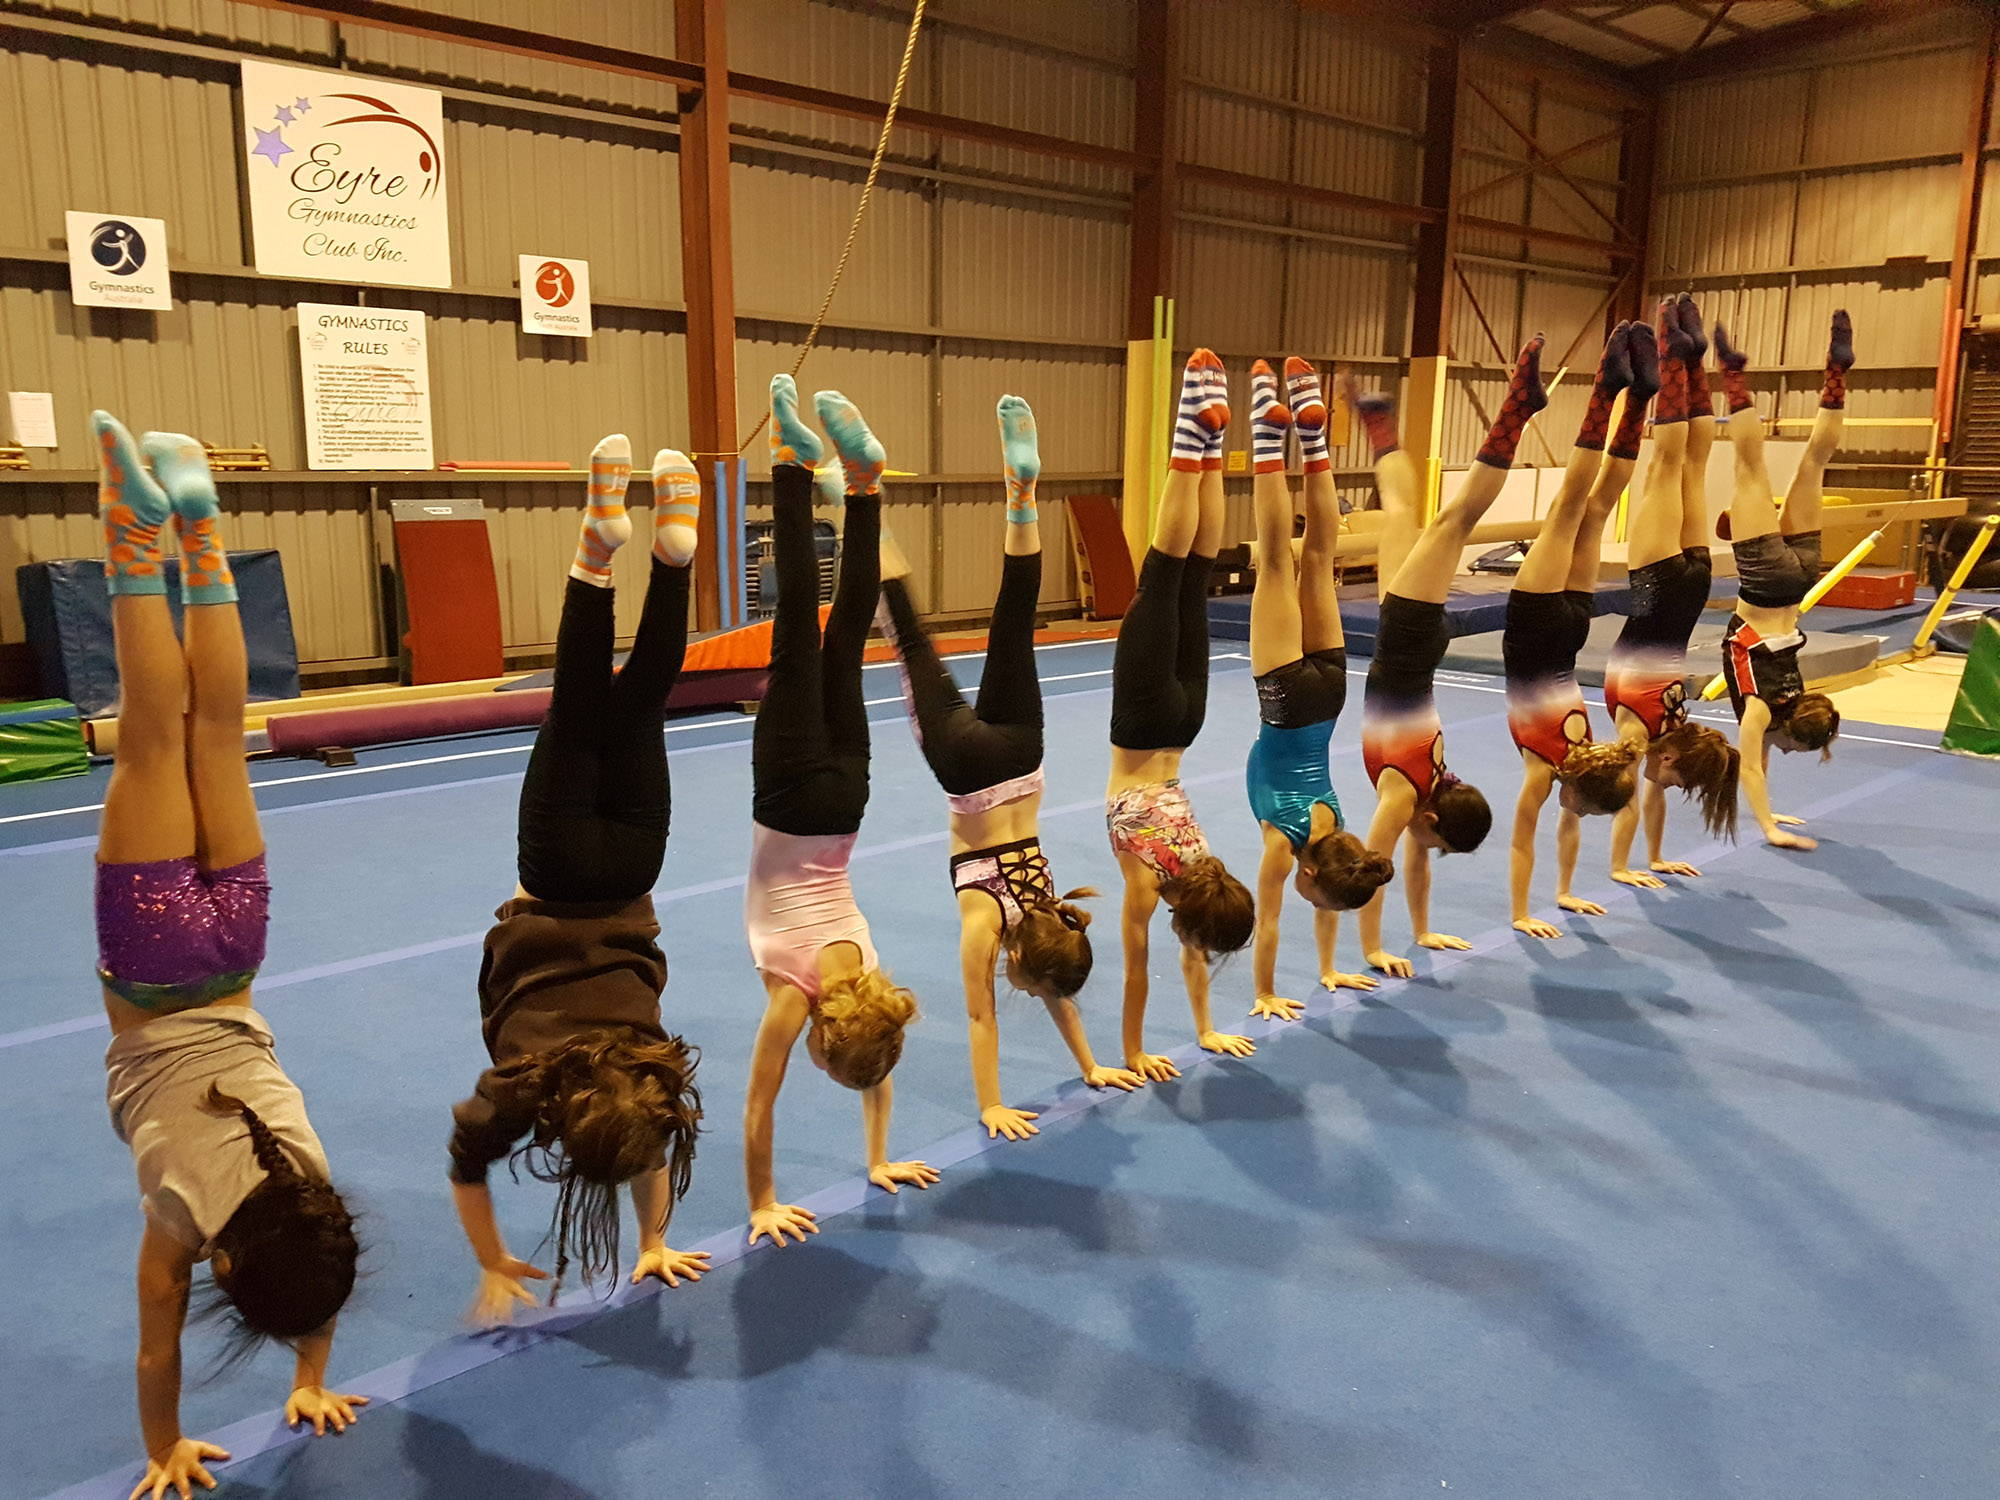 The profitable fundraising idea for sports team used by Eyre Gymnastics club